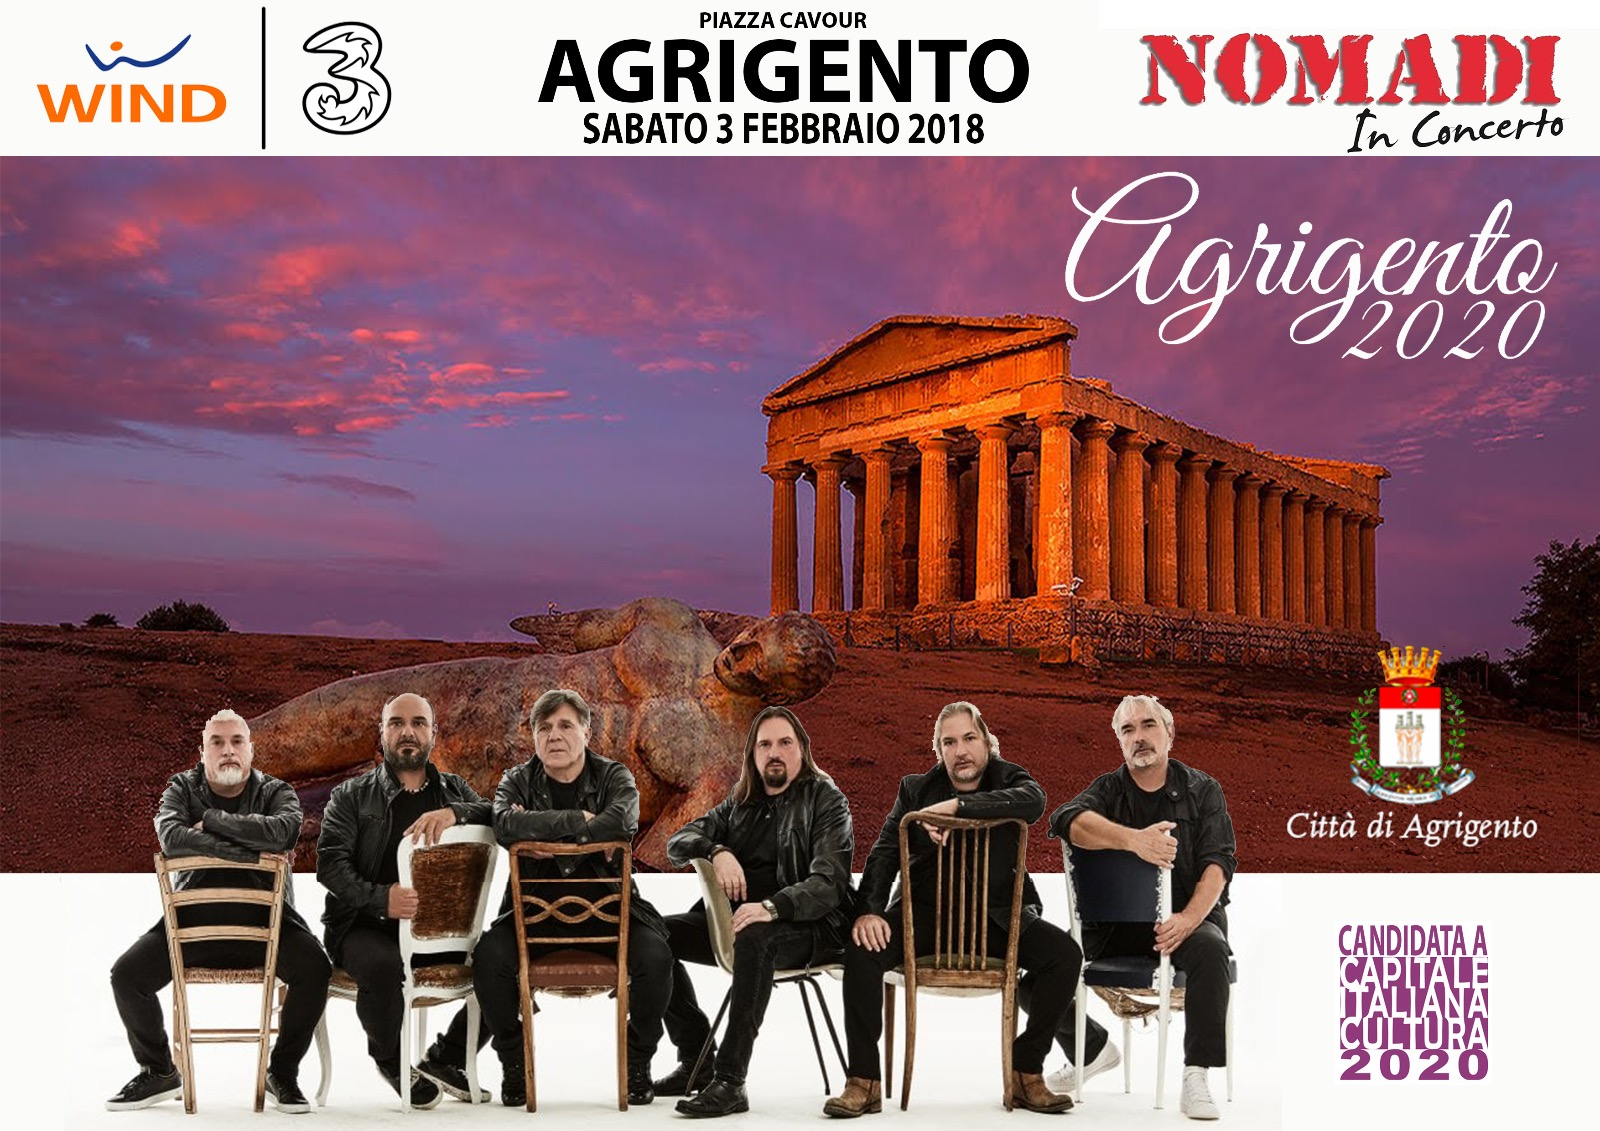 Photo of Wind Tre sostiene la candidatura di Agrigento come Capitale italiana della Cultura 2020